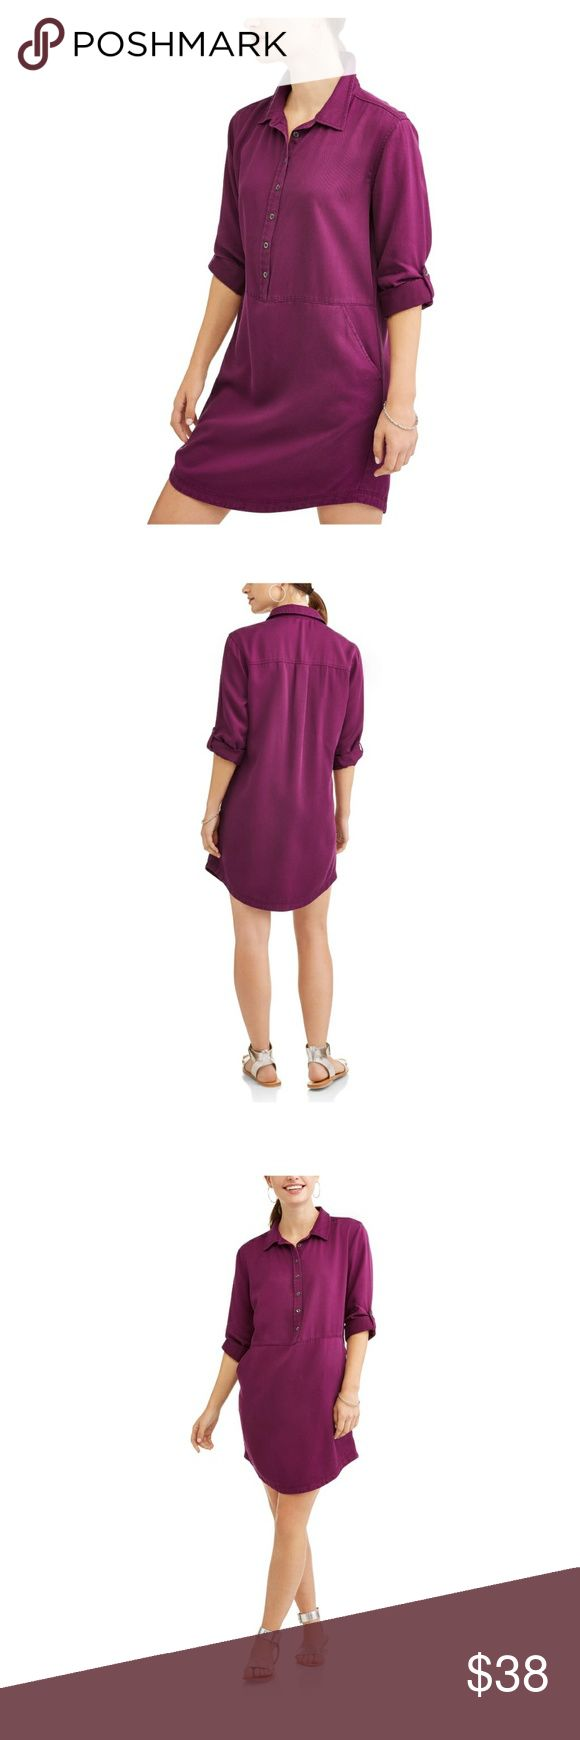 Women's Purple Lyocell Shirt Dress NWT Get ready for spring and summer in this versatile Lyocell Shirt Dress with pockets! Button down front with sleeves that can be folded and buttoned above the elbow. This is an excellent combination of chic and comfortable! Lyocell is a soft silky fabric, that is highly resistant to wrinkling making the dress easy to wear and comfy. This listing is for a purple one. I have listings for black, moss & red. One each Small= 4-6; Medium=8-10; L=12-14. Dresses…